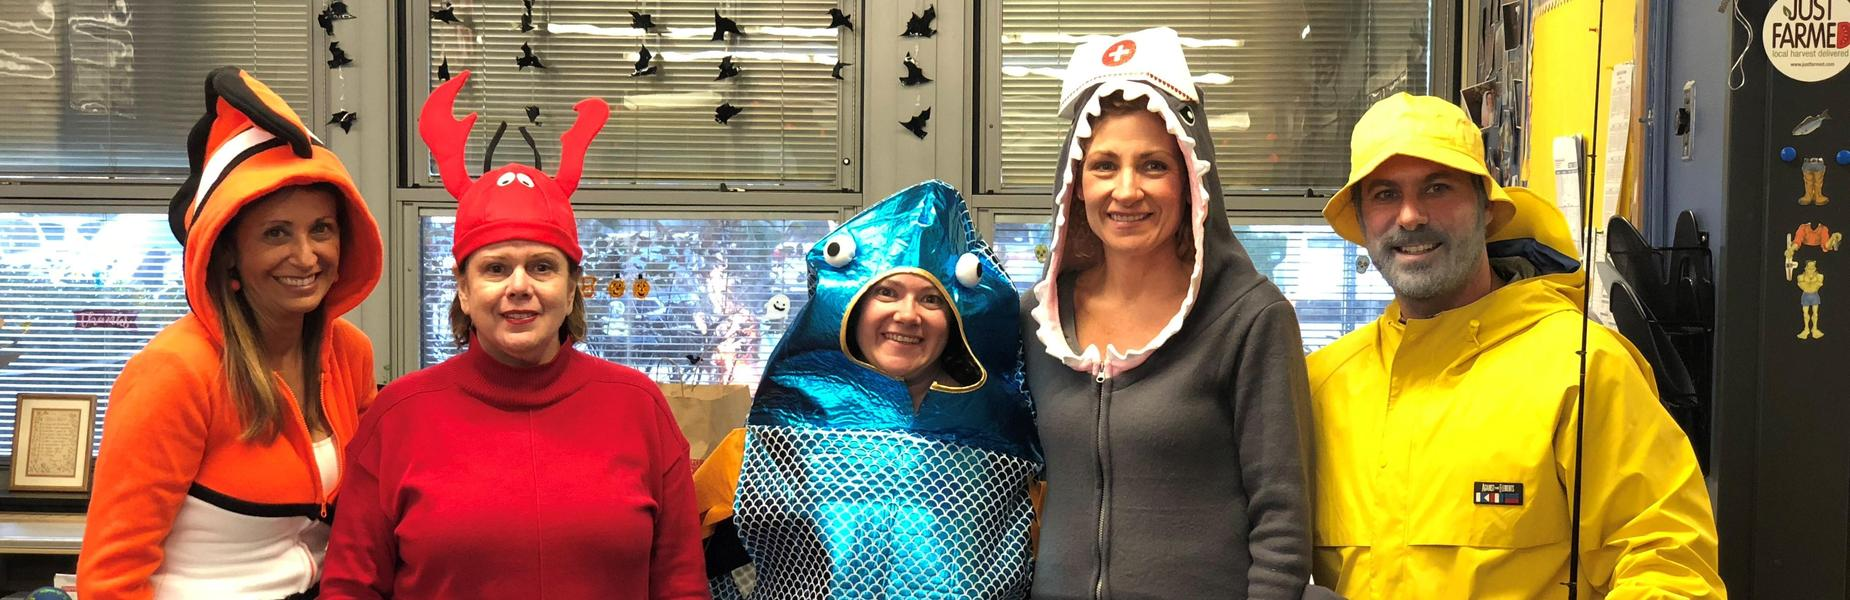 Tamaques principal David Duelks dresses as a fisherman with his staff as various ocean critters for Halloween 2018.